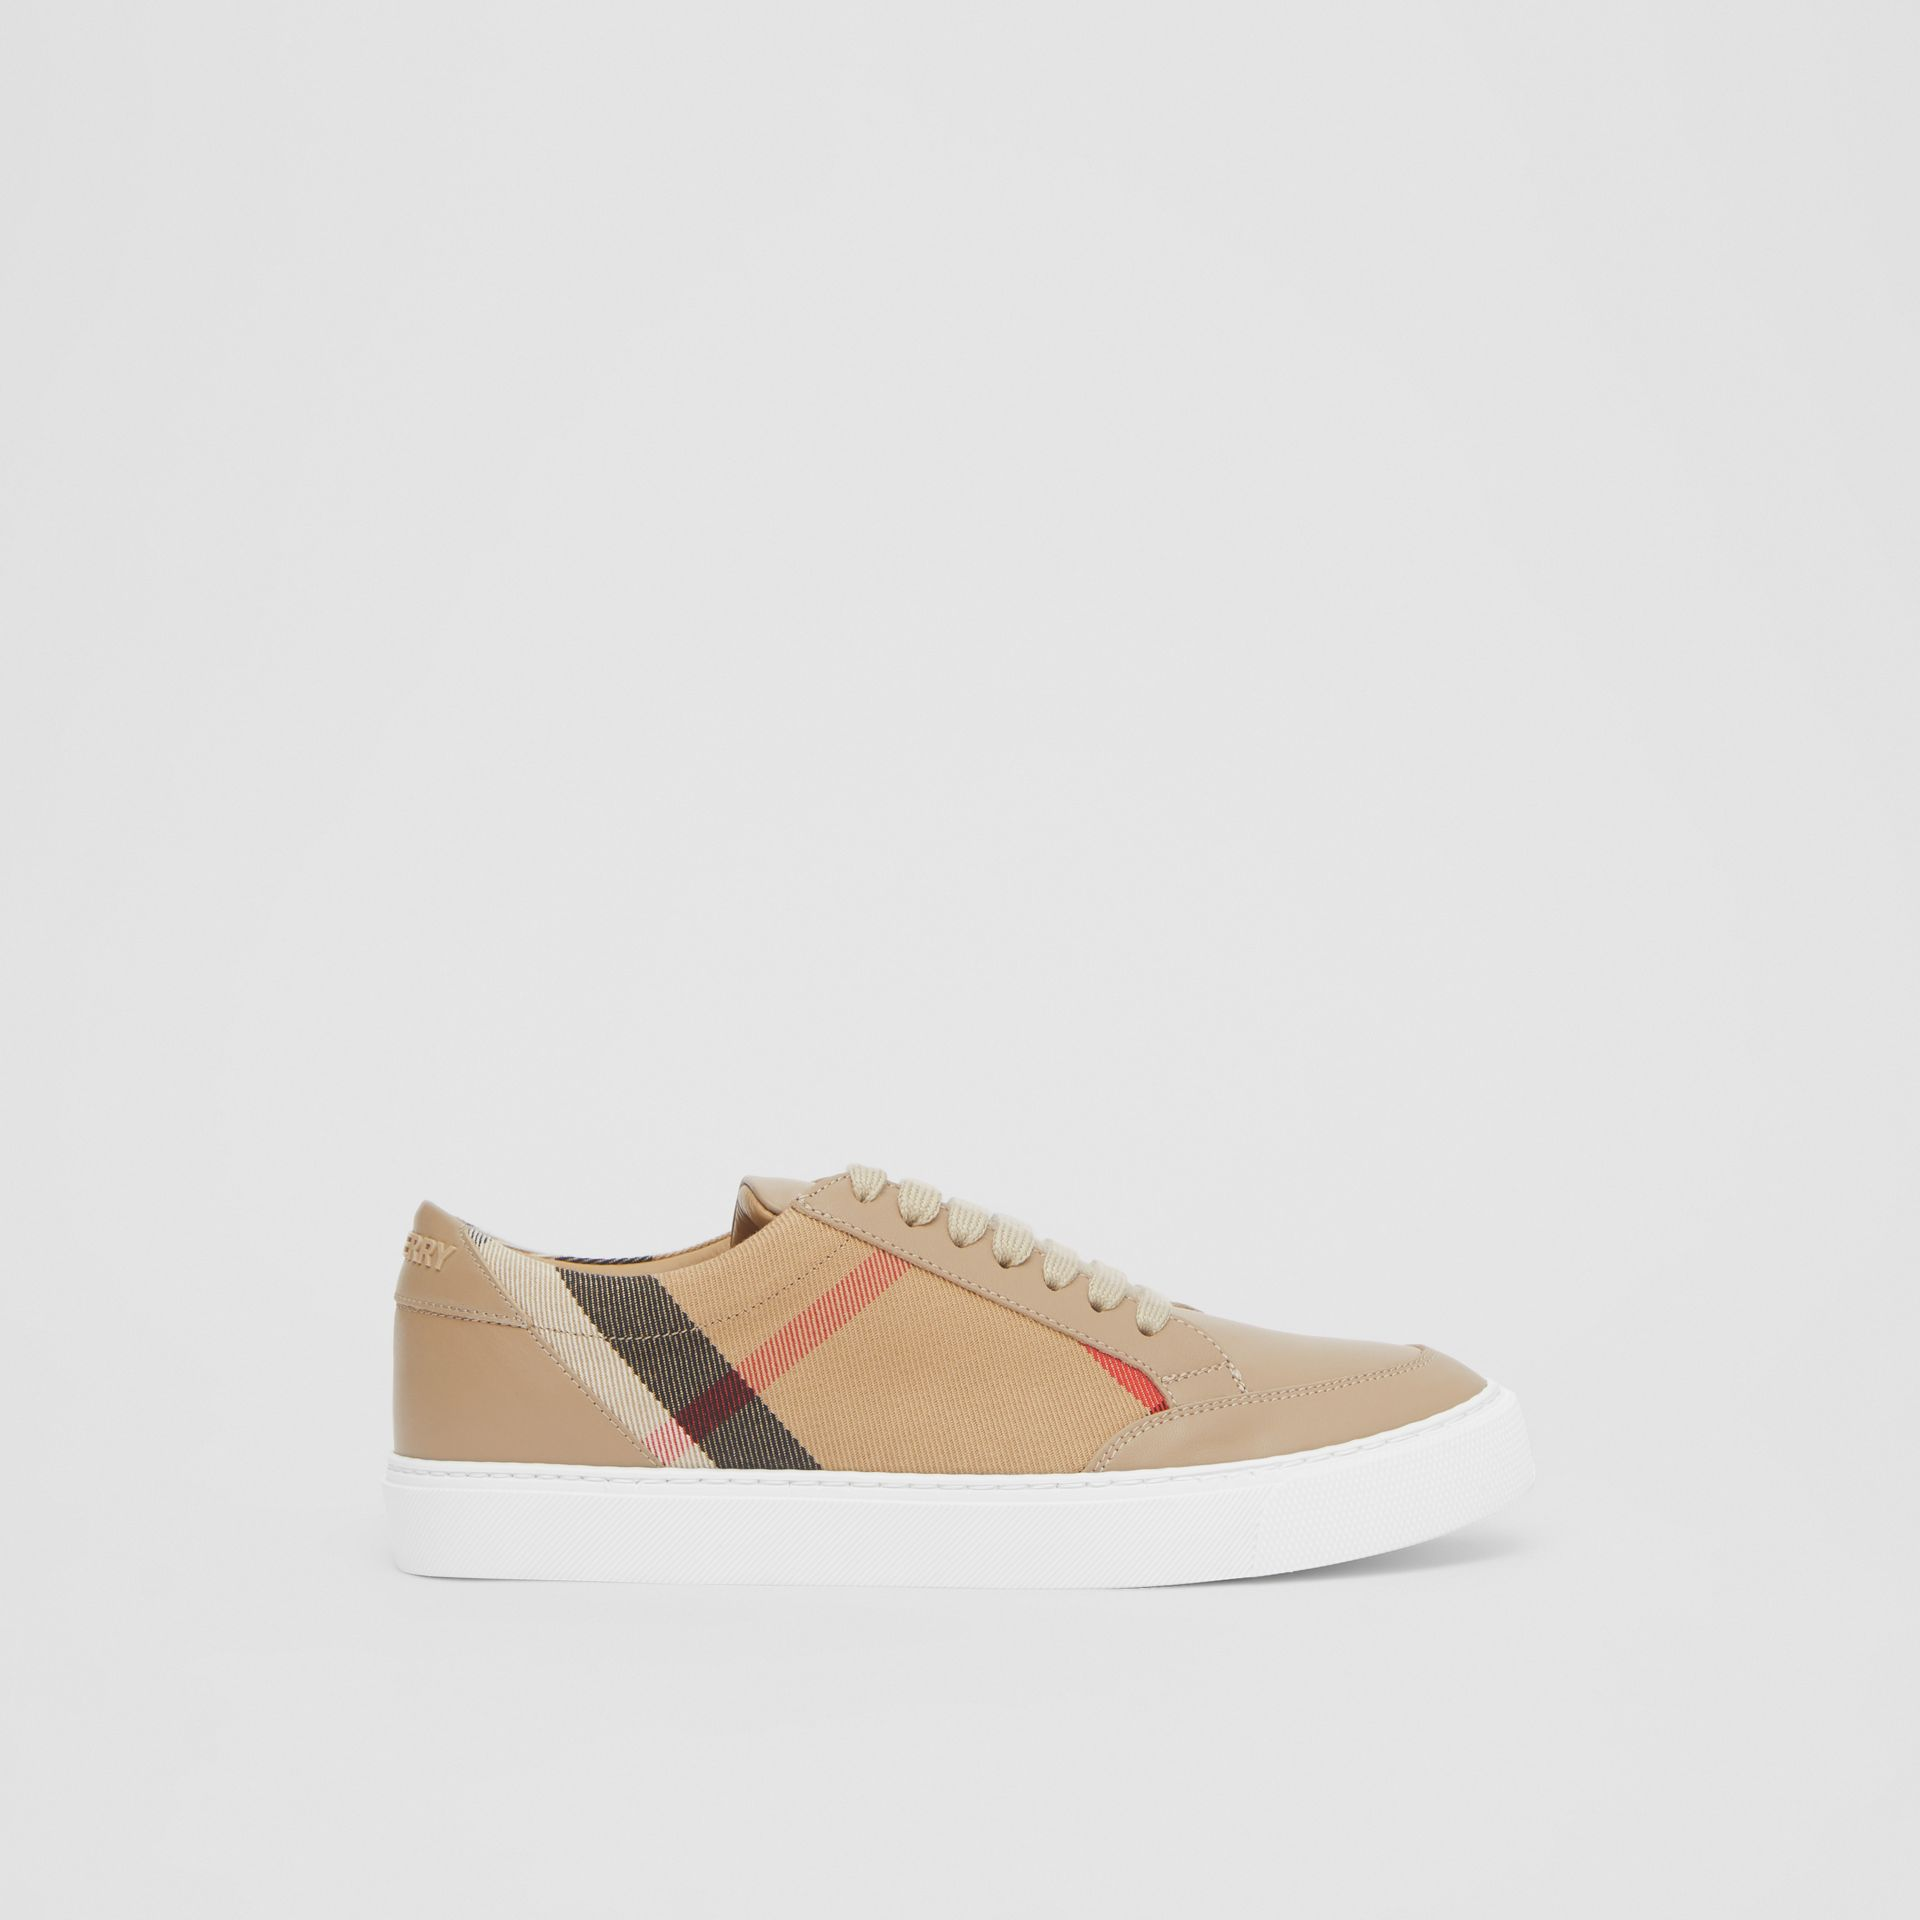 House Check and Leather Sneakers in Tan - Women | Burberry United Kingdom - gallery image 5